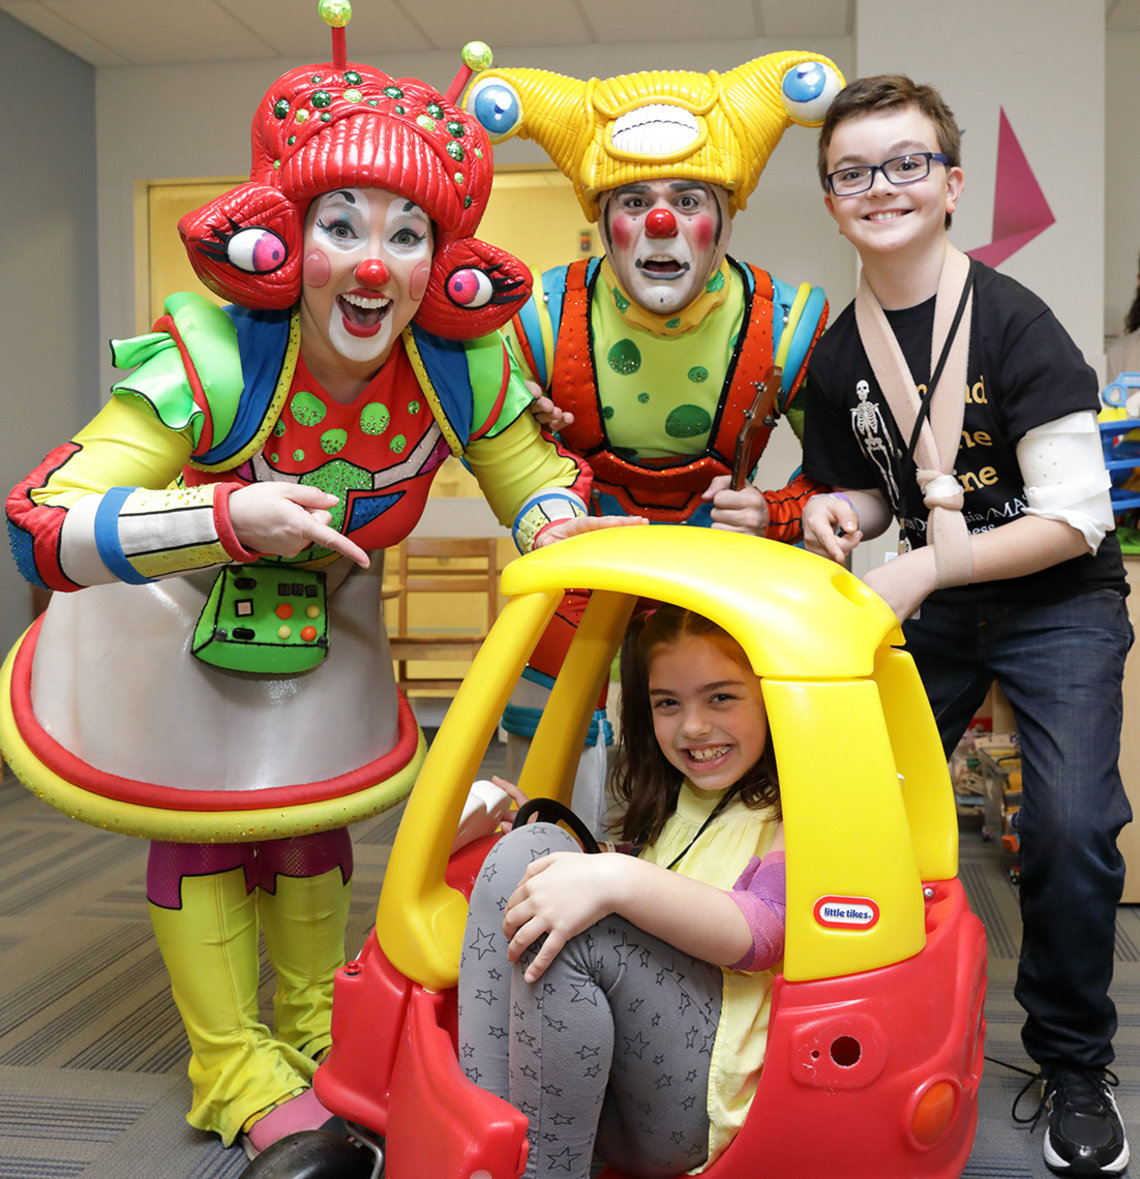 In toy car, driver Ellasyn Berry is joined by circus clowns and Rylan Michael Pederson.